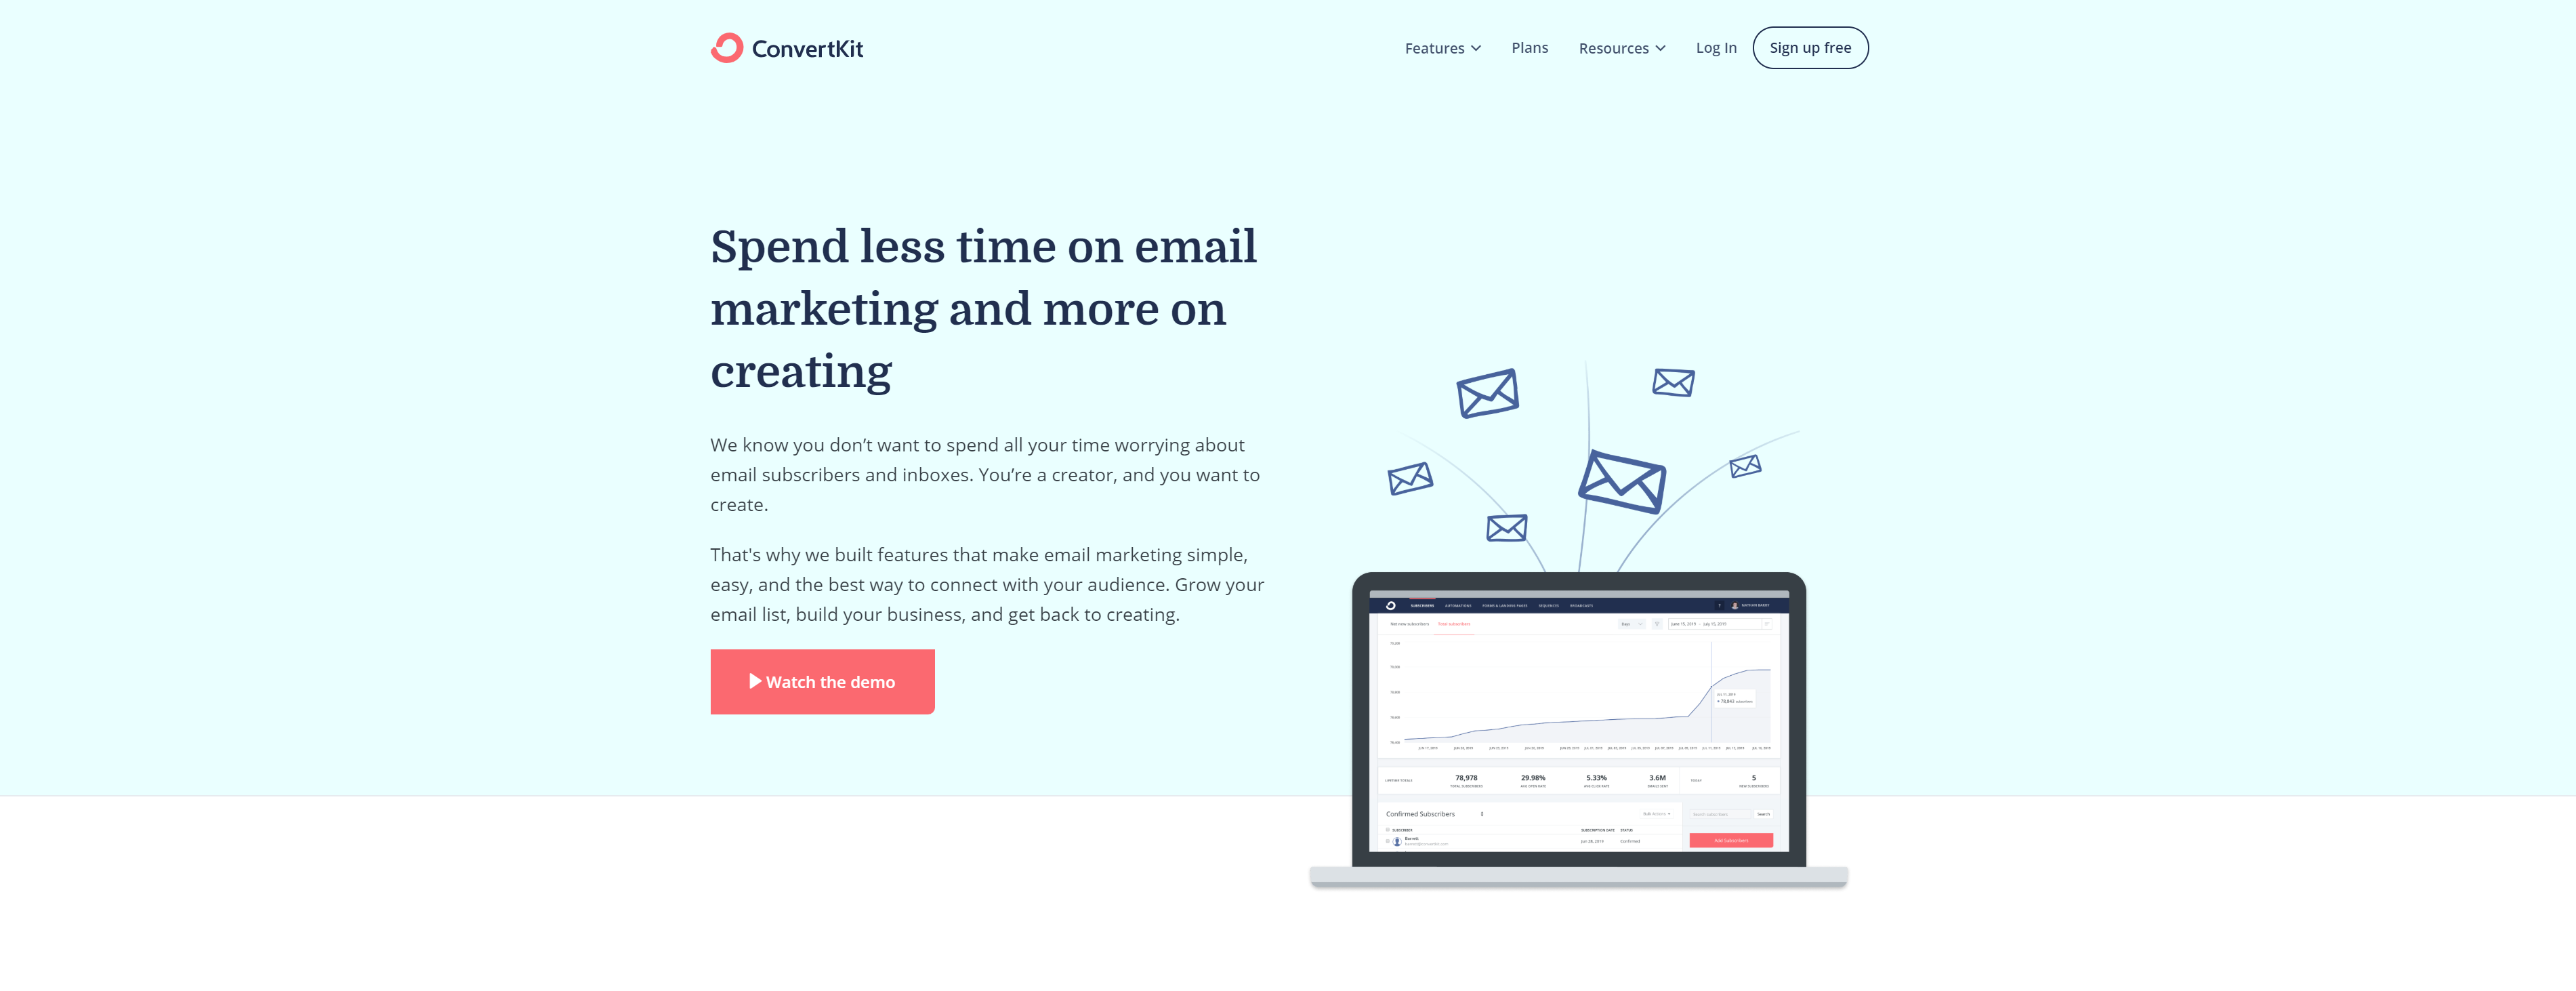 The landing page of ConvertKit